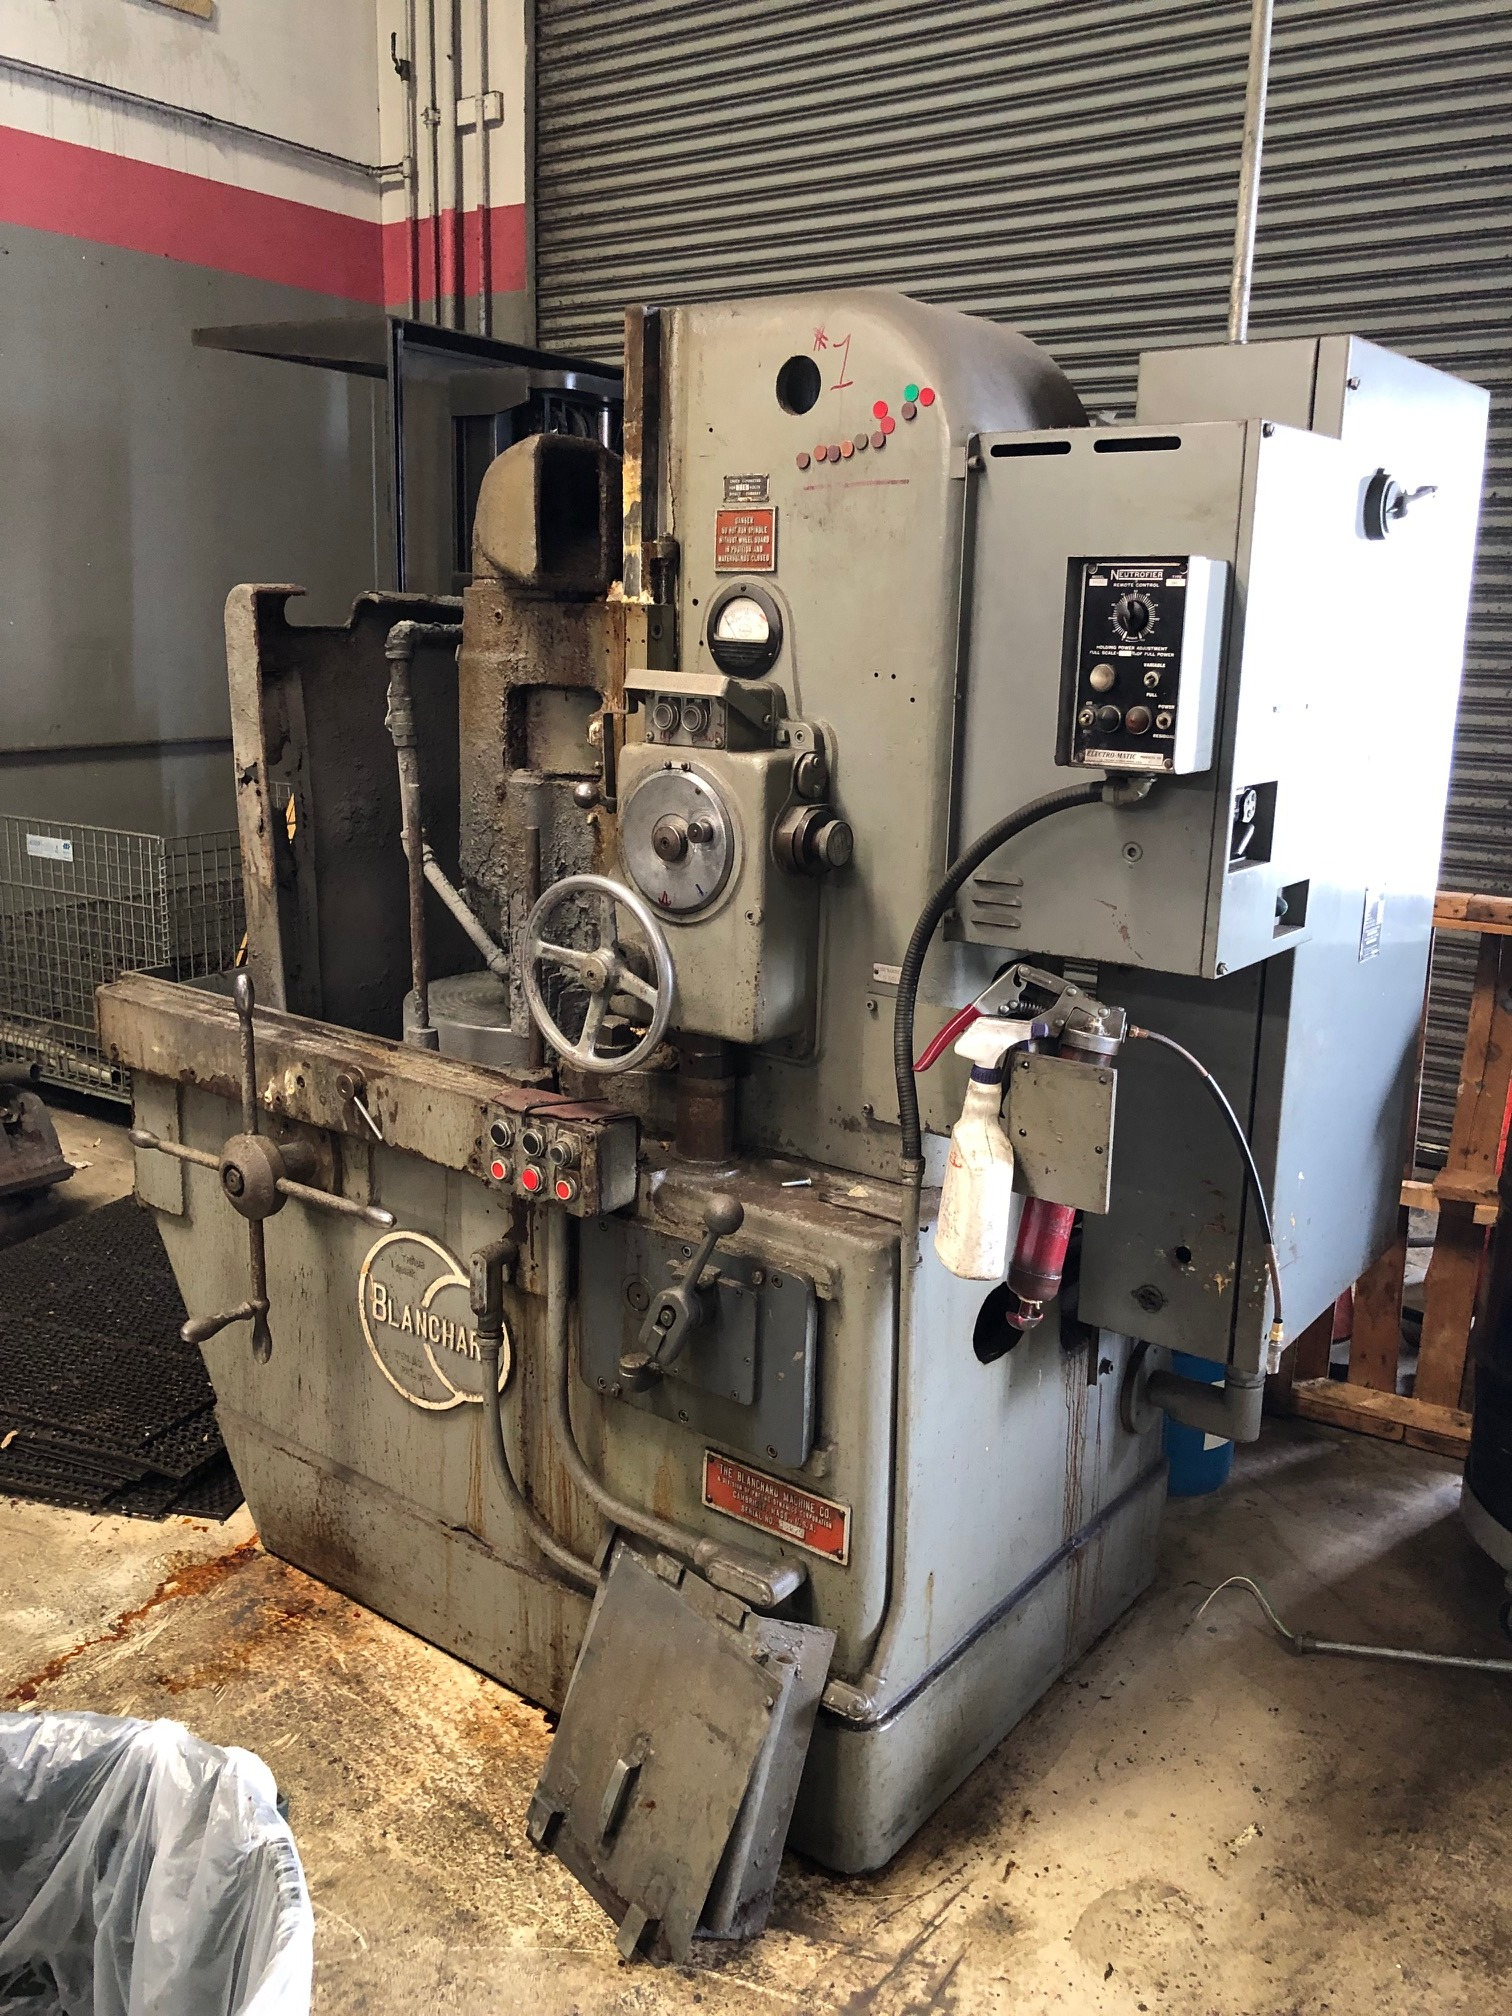 BLANCHARDBlanchard 11-16 Vertical Spindle Rotary Surface Grinder, 2 Available